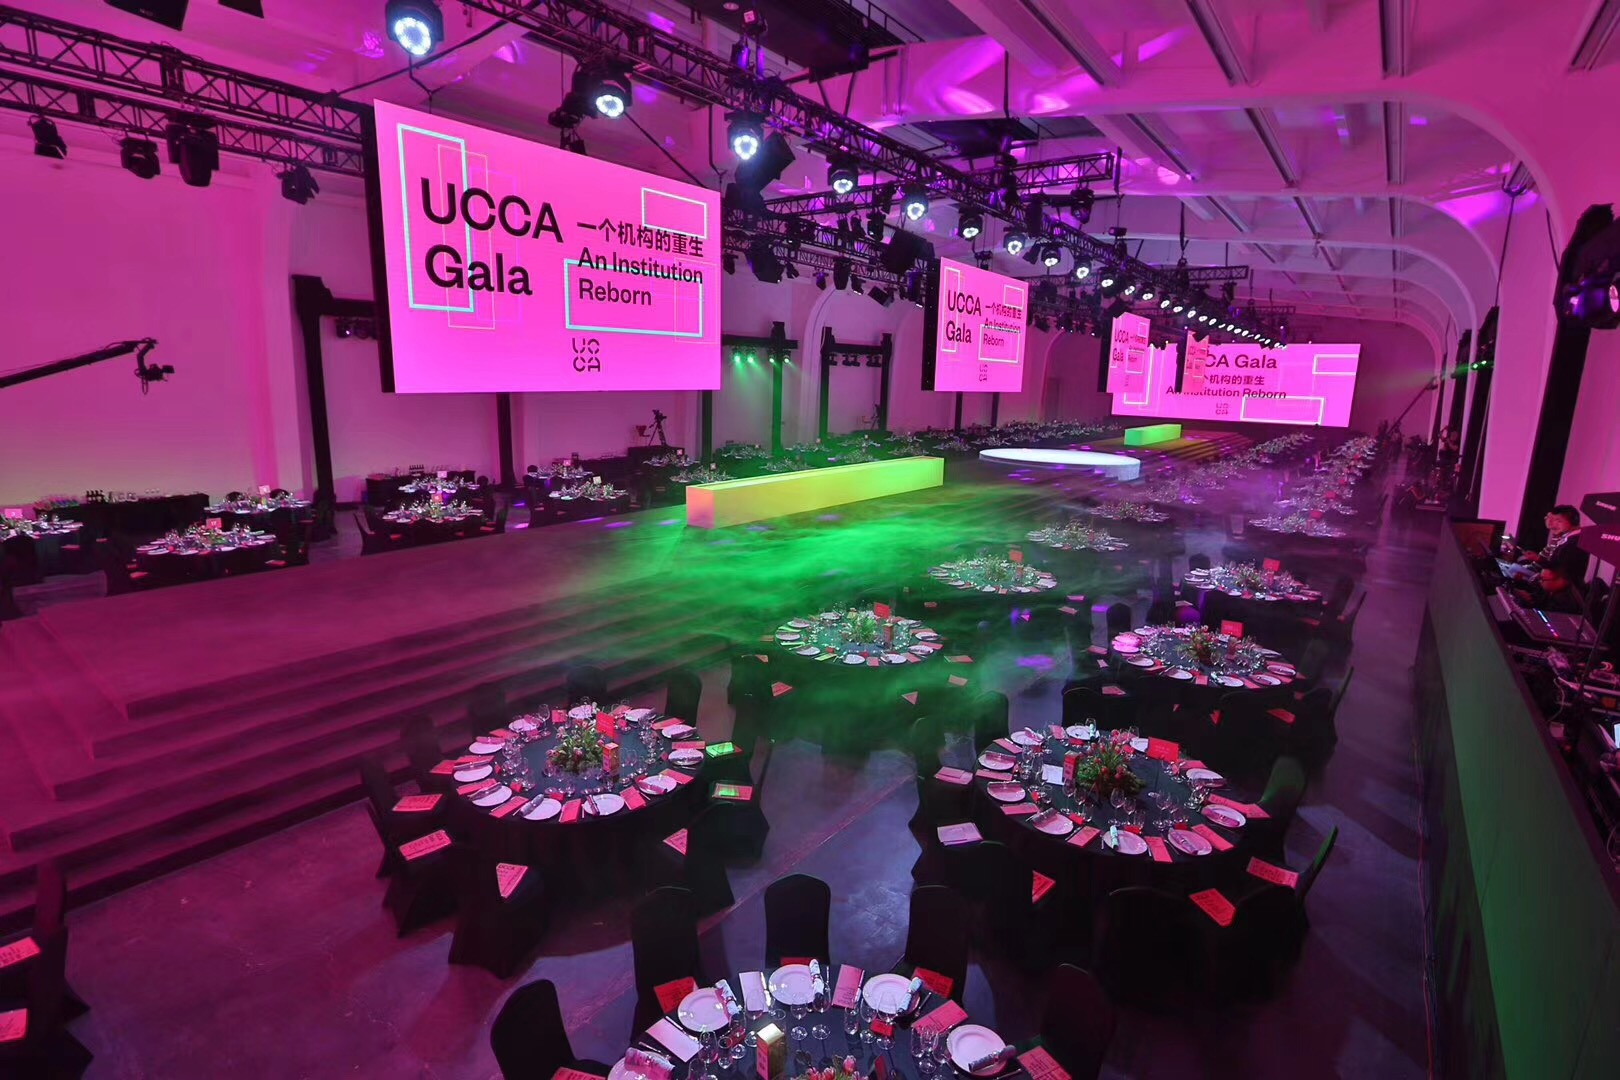 UCCA Gala 2018_An Institution Reborn_HE Wei 何为_Chewing Theoty_咀嚼间-1